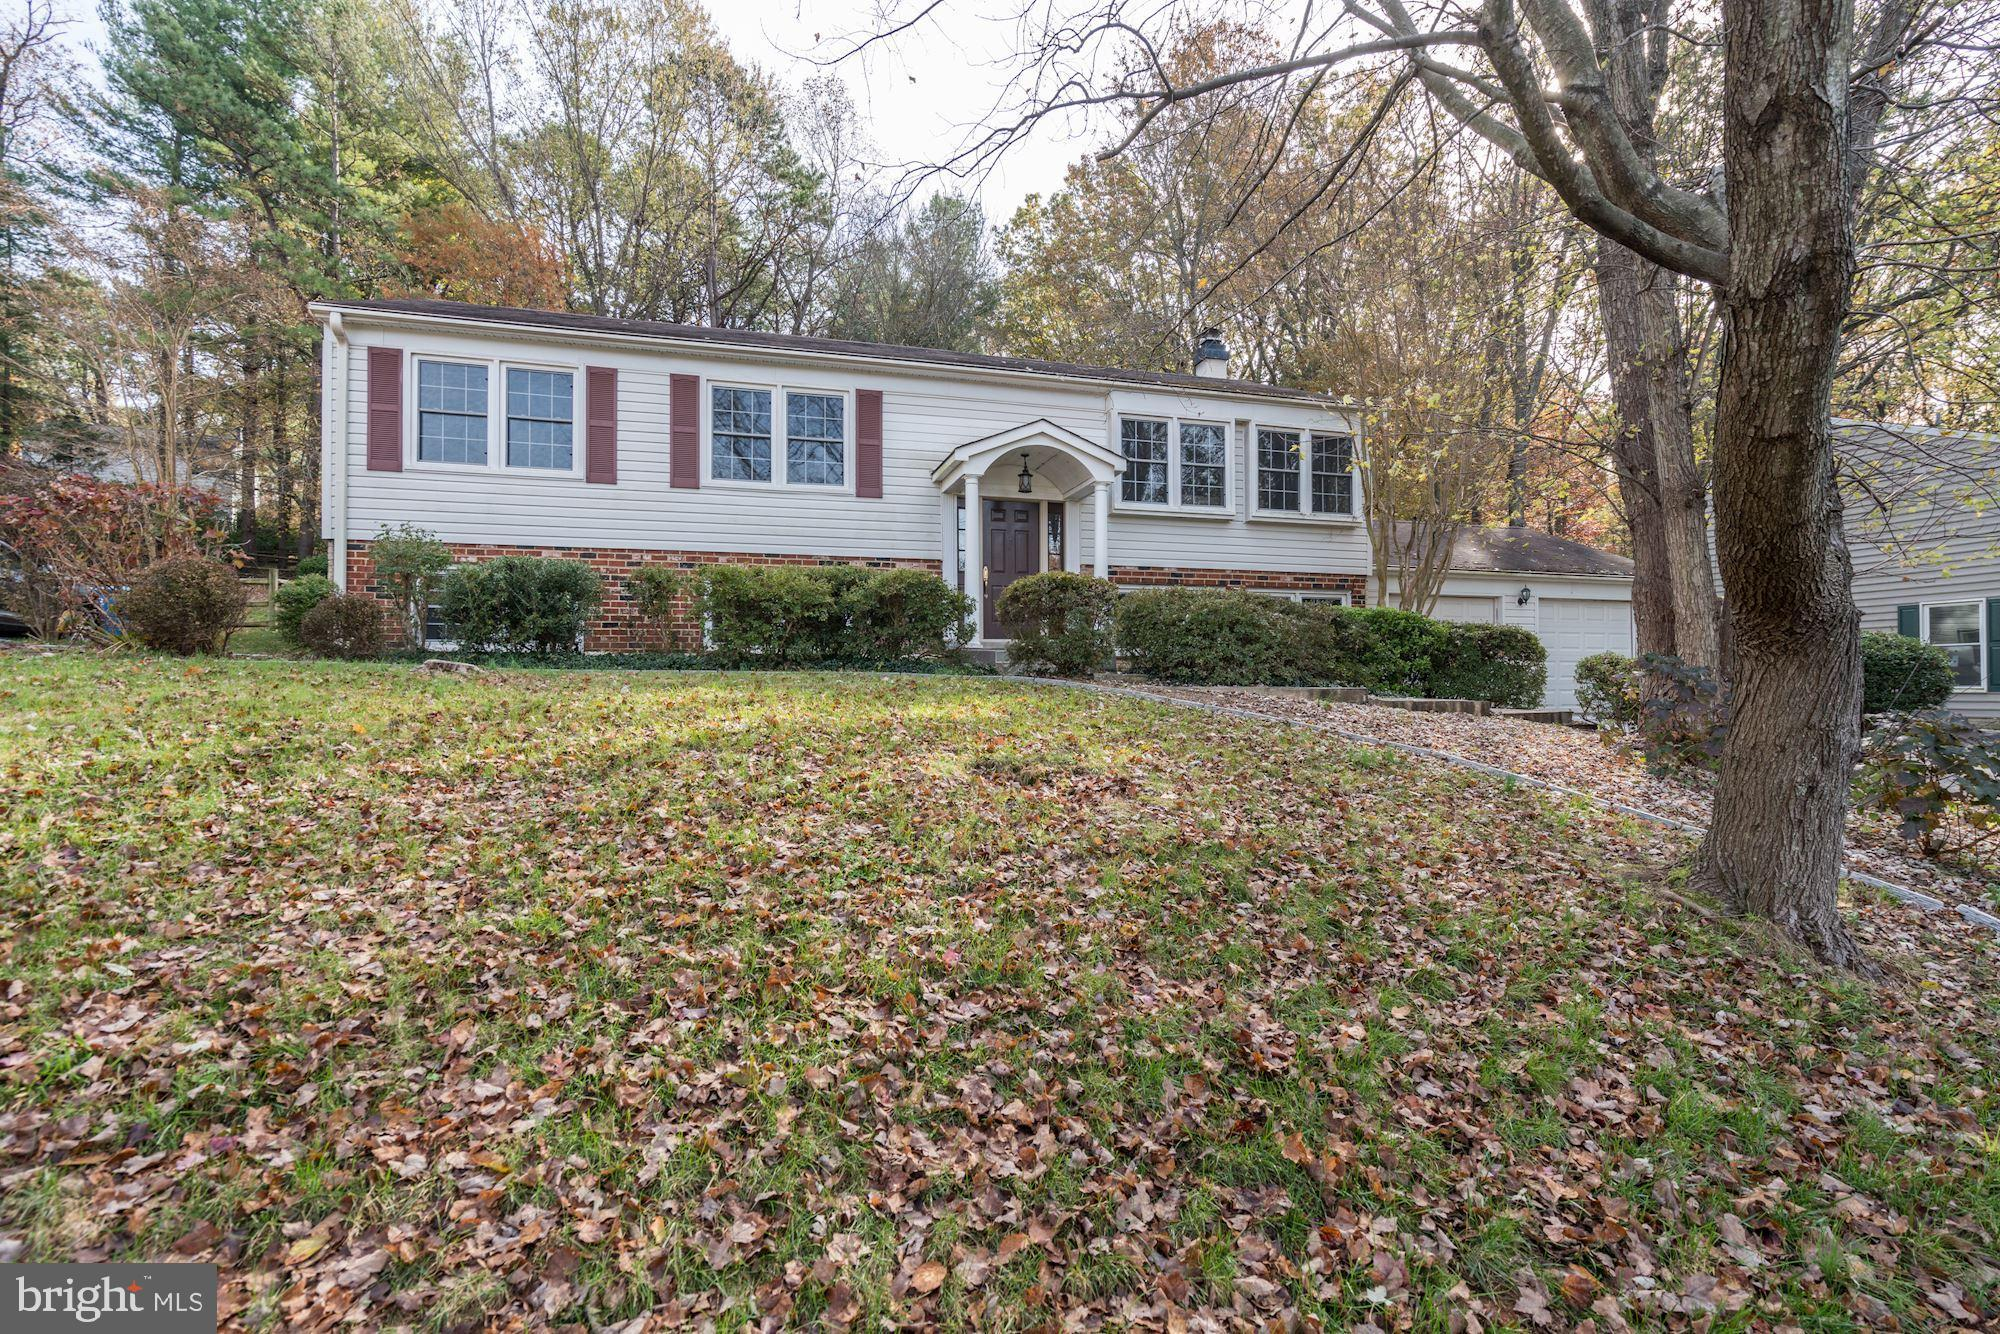 Beautiful split-level 4 bedroom 3 and one-half bath home on Cranberry Lane, a quiet cul-de-sac in Re